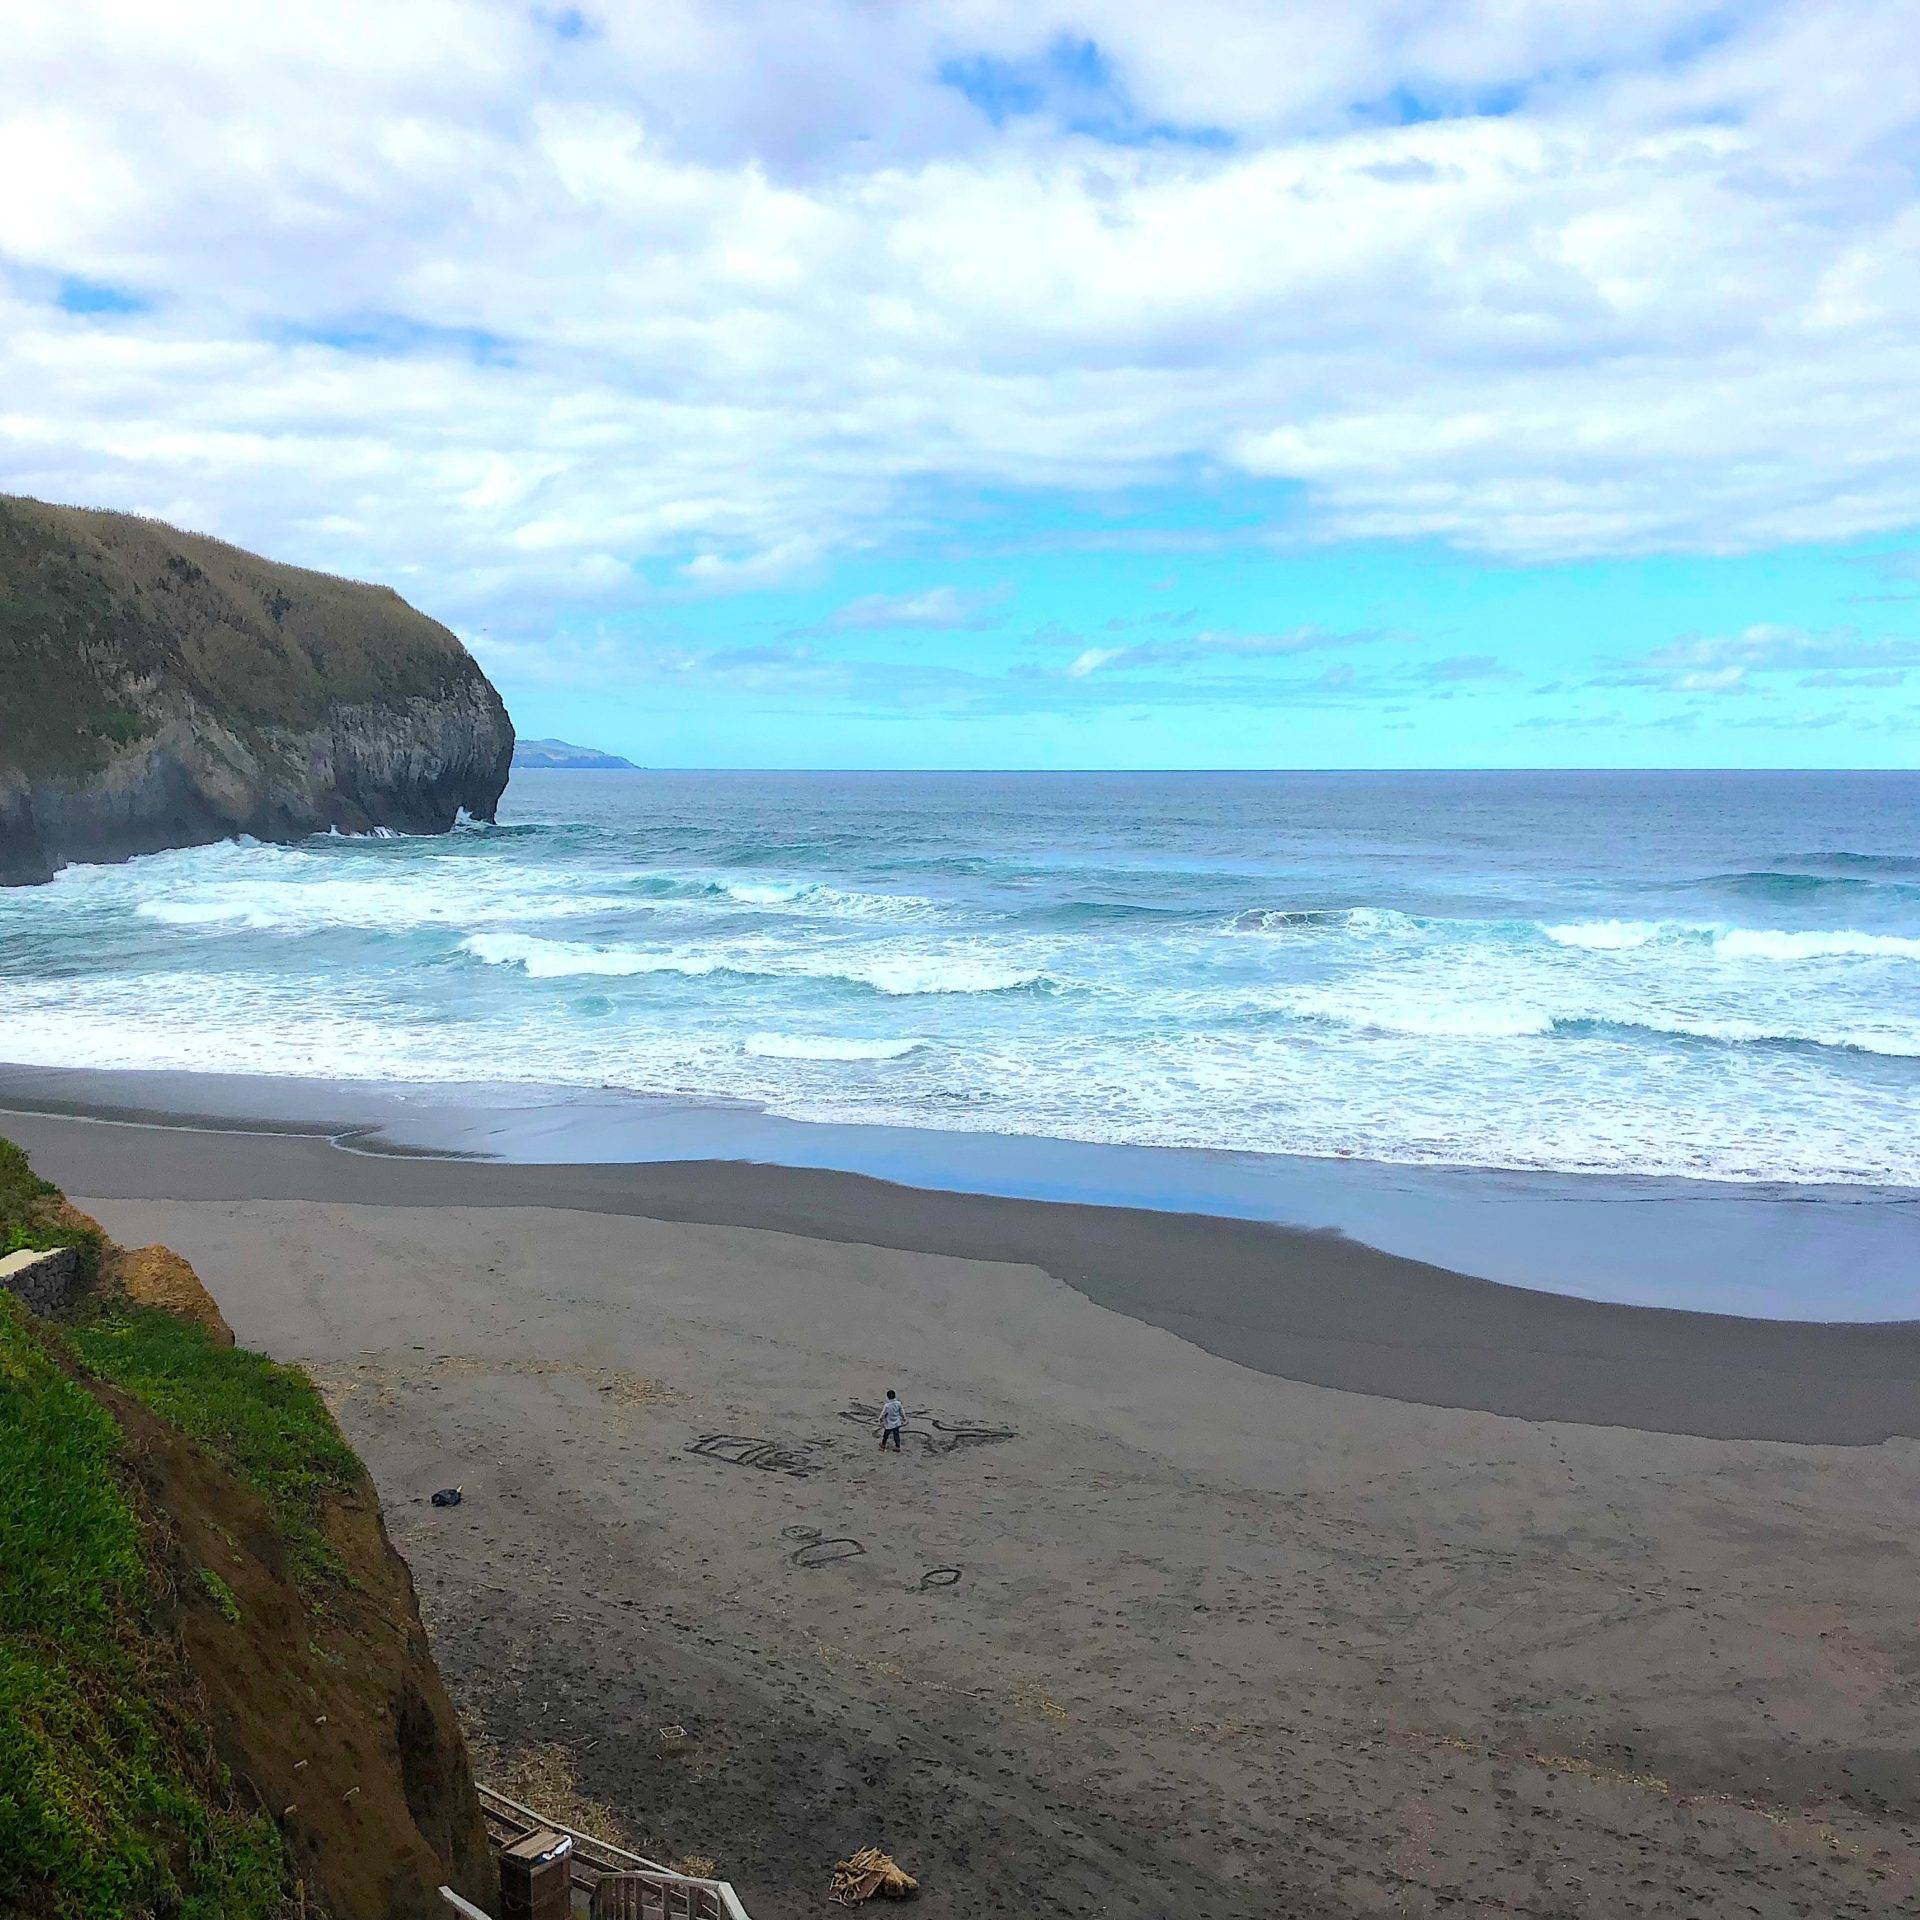 Santa-Barbara-Beach-Azores-Weather-in-October